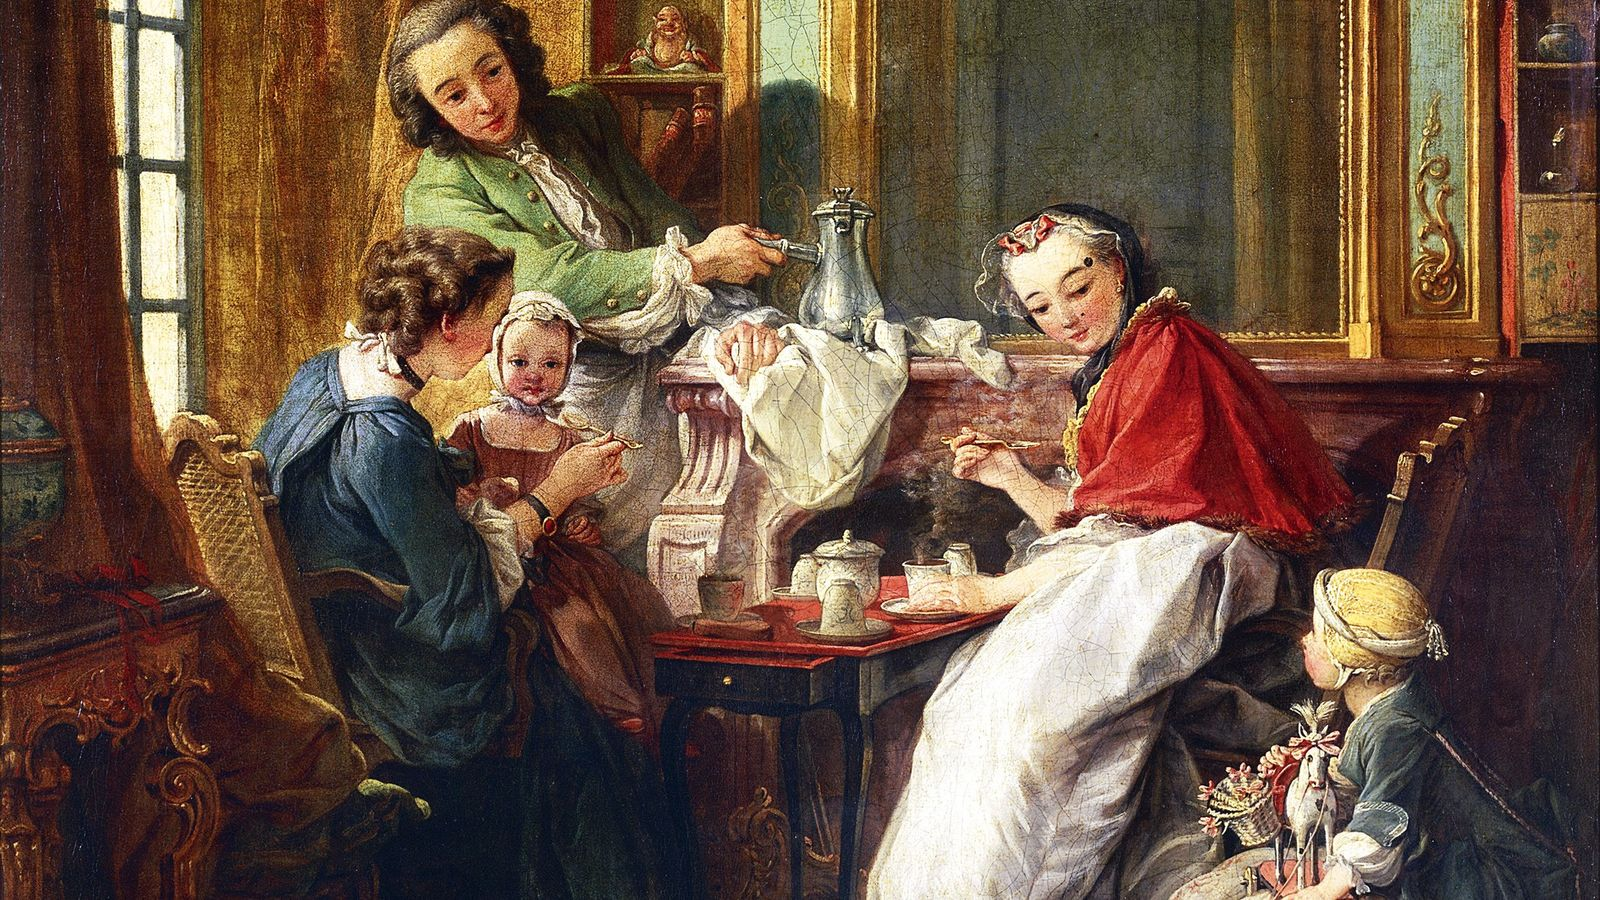 Chocolate on the menu in this 18th-century French painting of a family at breakfast by François ...